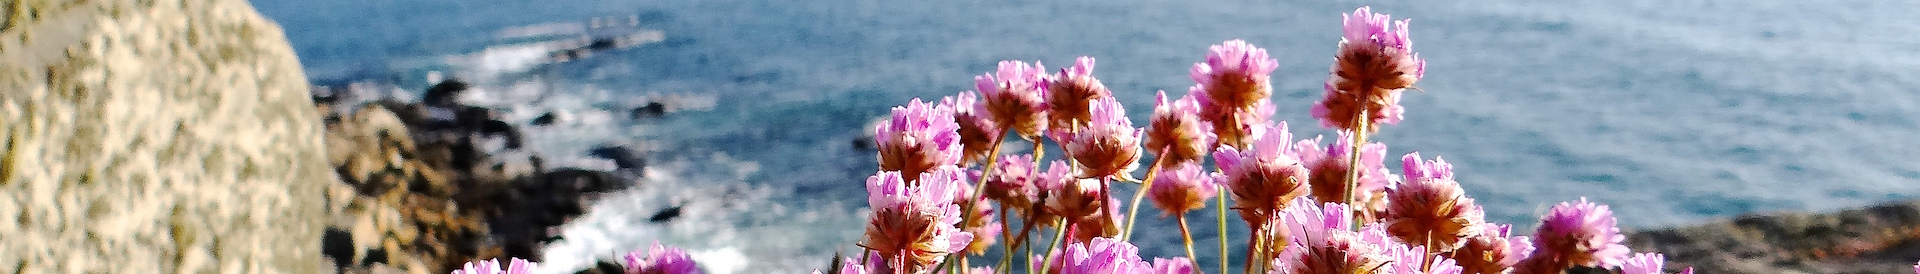 Armeria maritima at the forefront of Bihit at Trebeurden